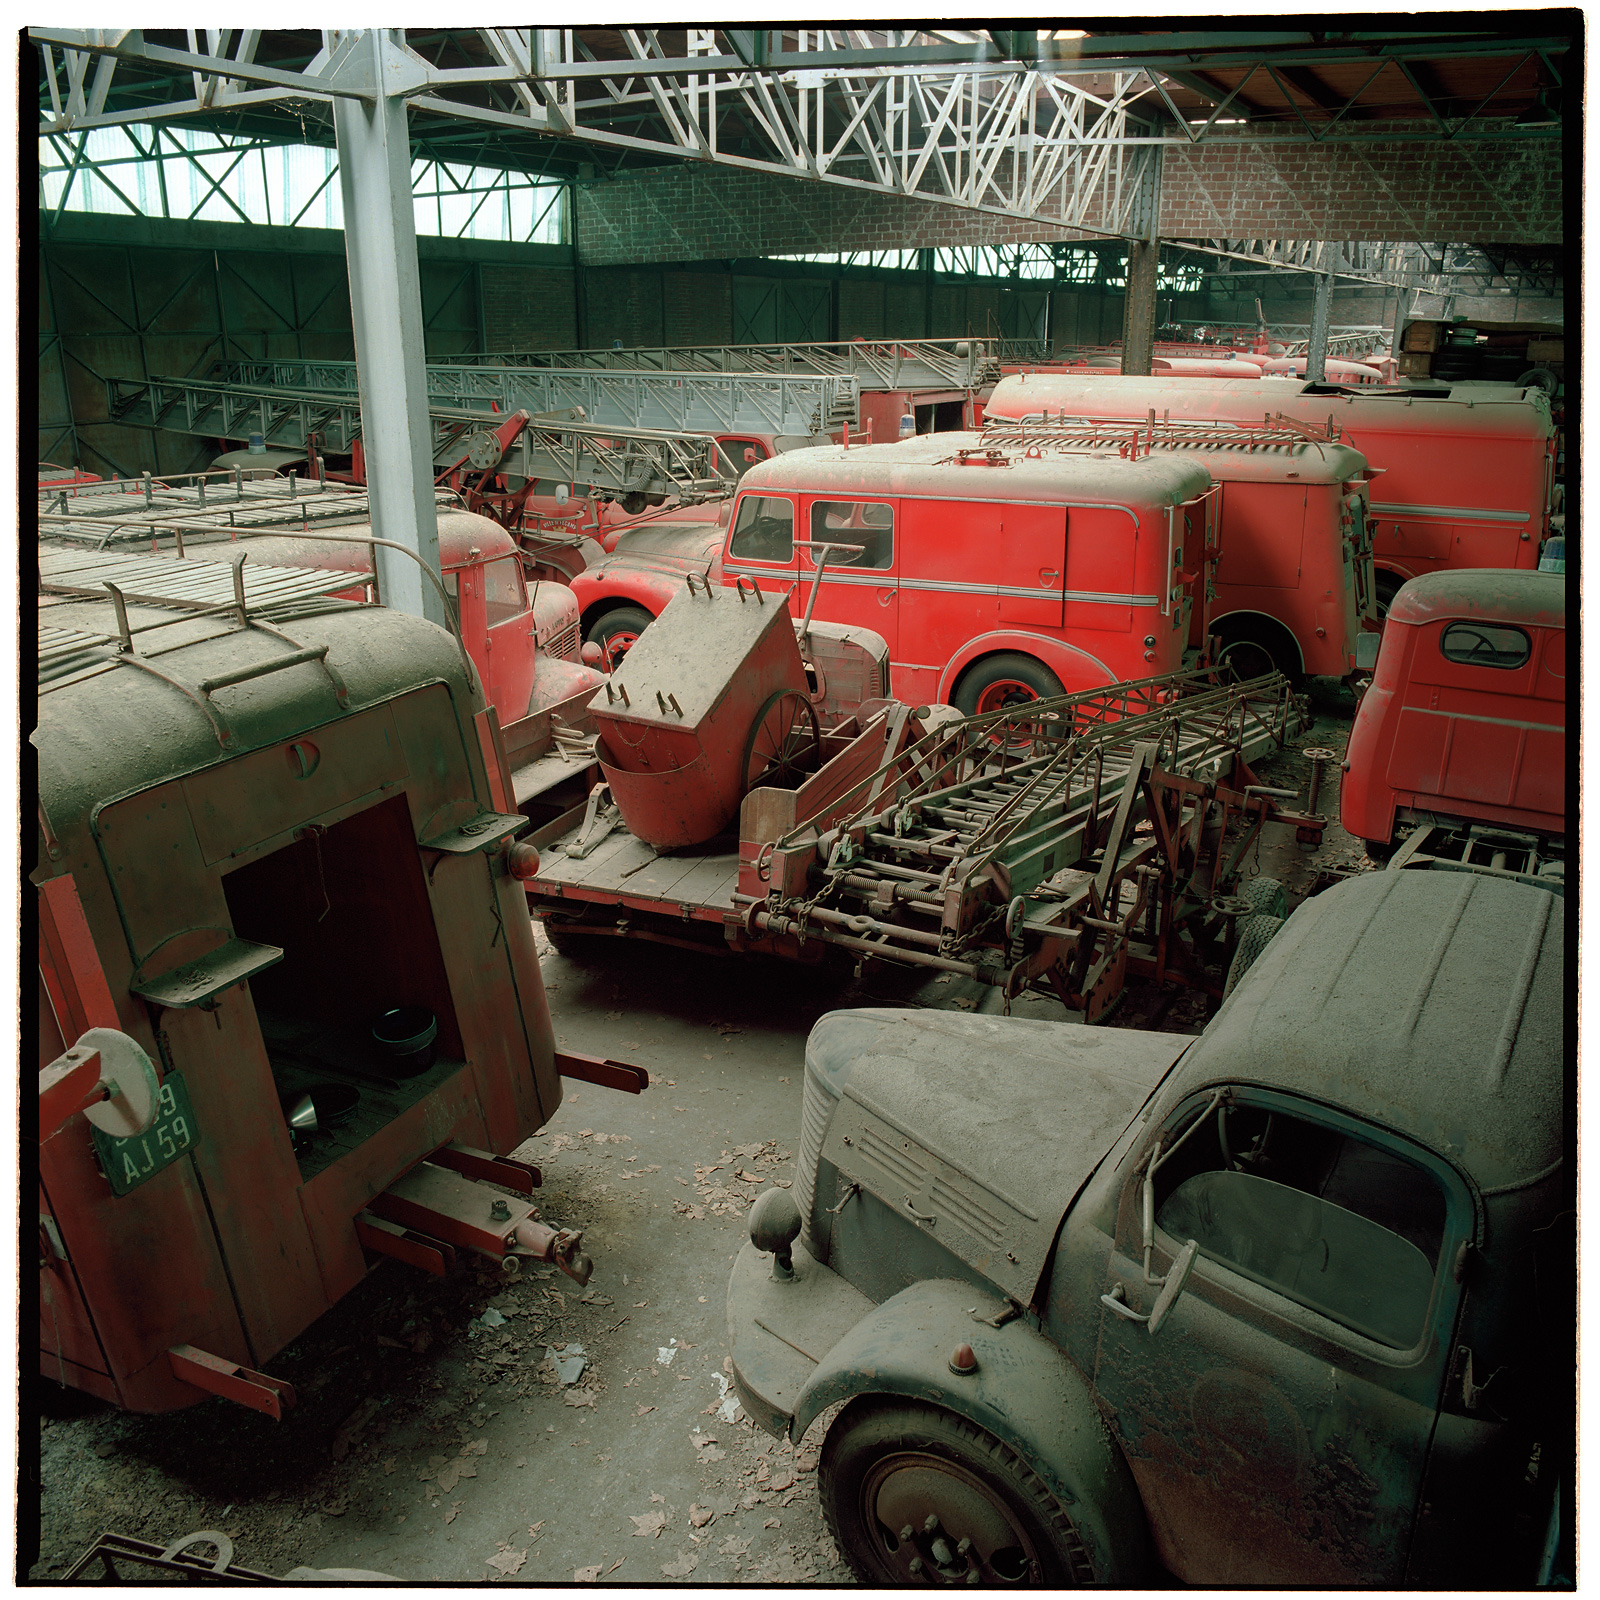 Not much parking space left in the old warehouse at Cimetière camions de pompiers, France.